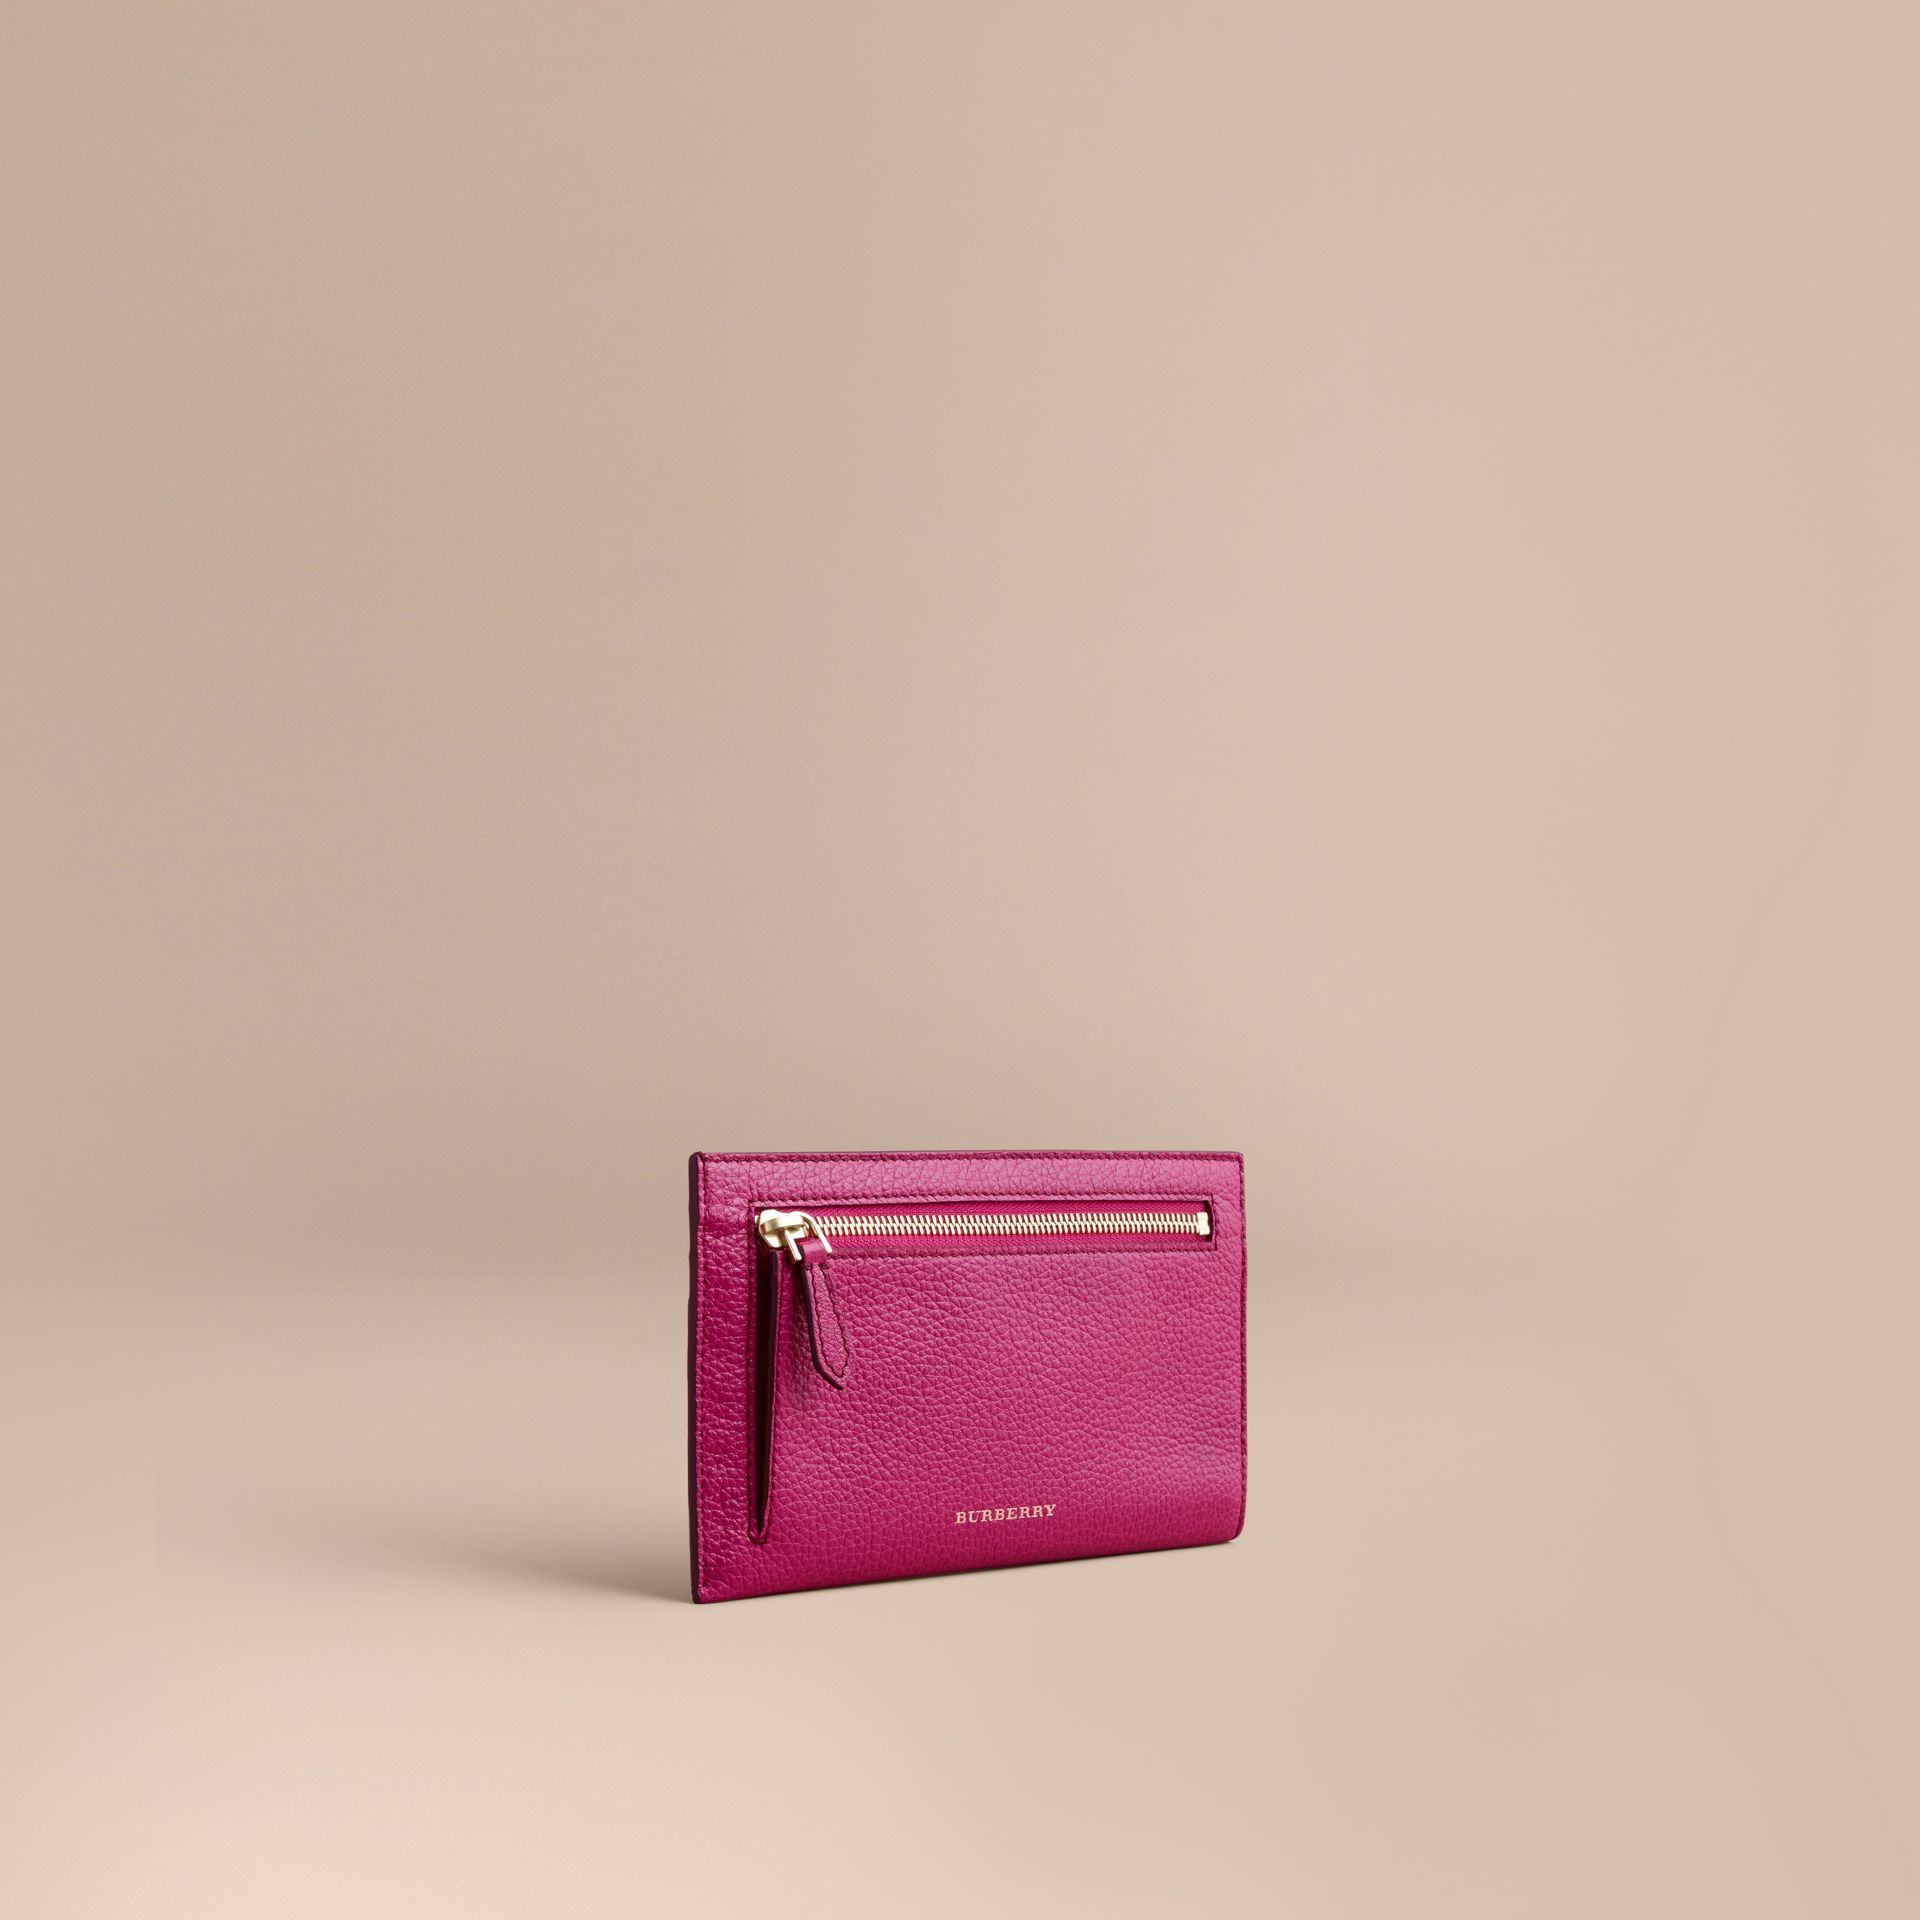 Grainy Leather Travel Case in Brilliant Fuchsia - Women | Burberry - gallery image 1